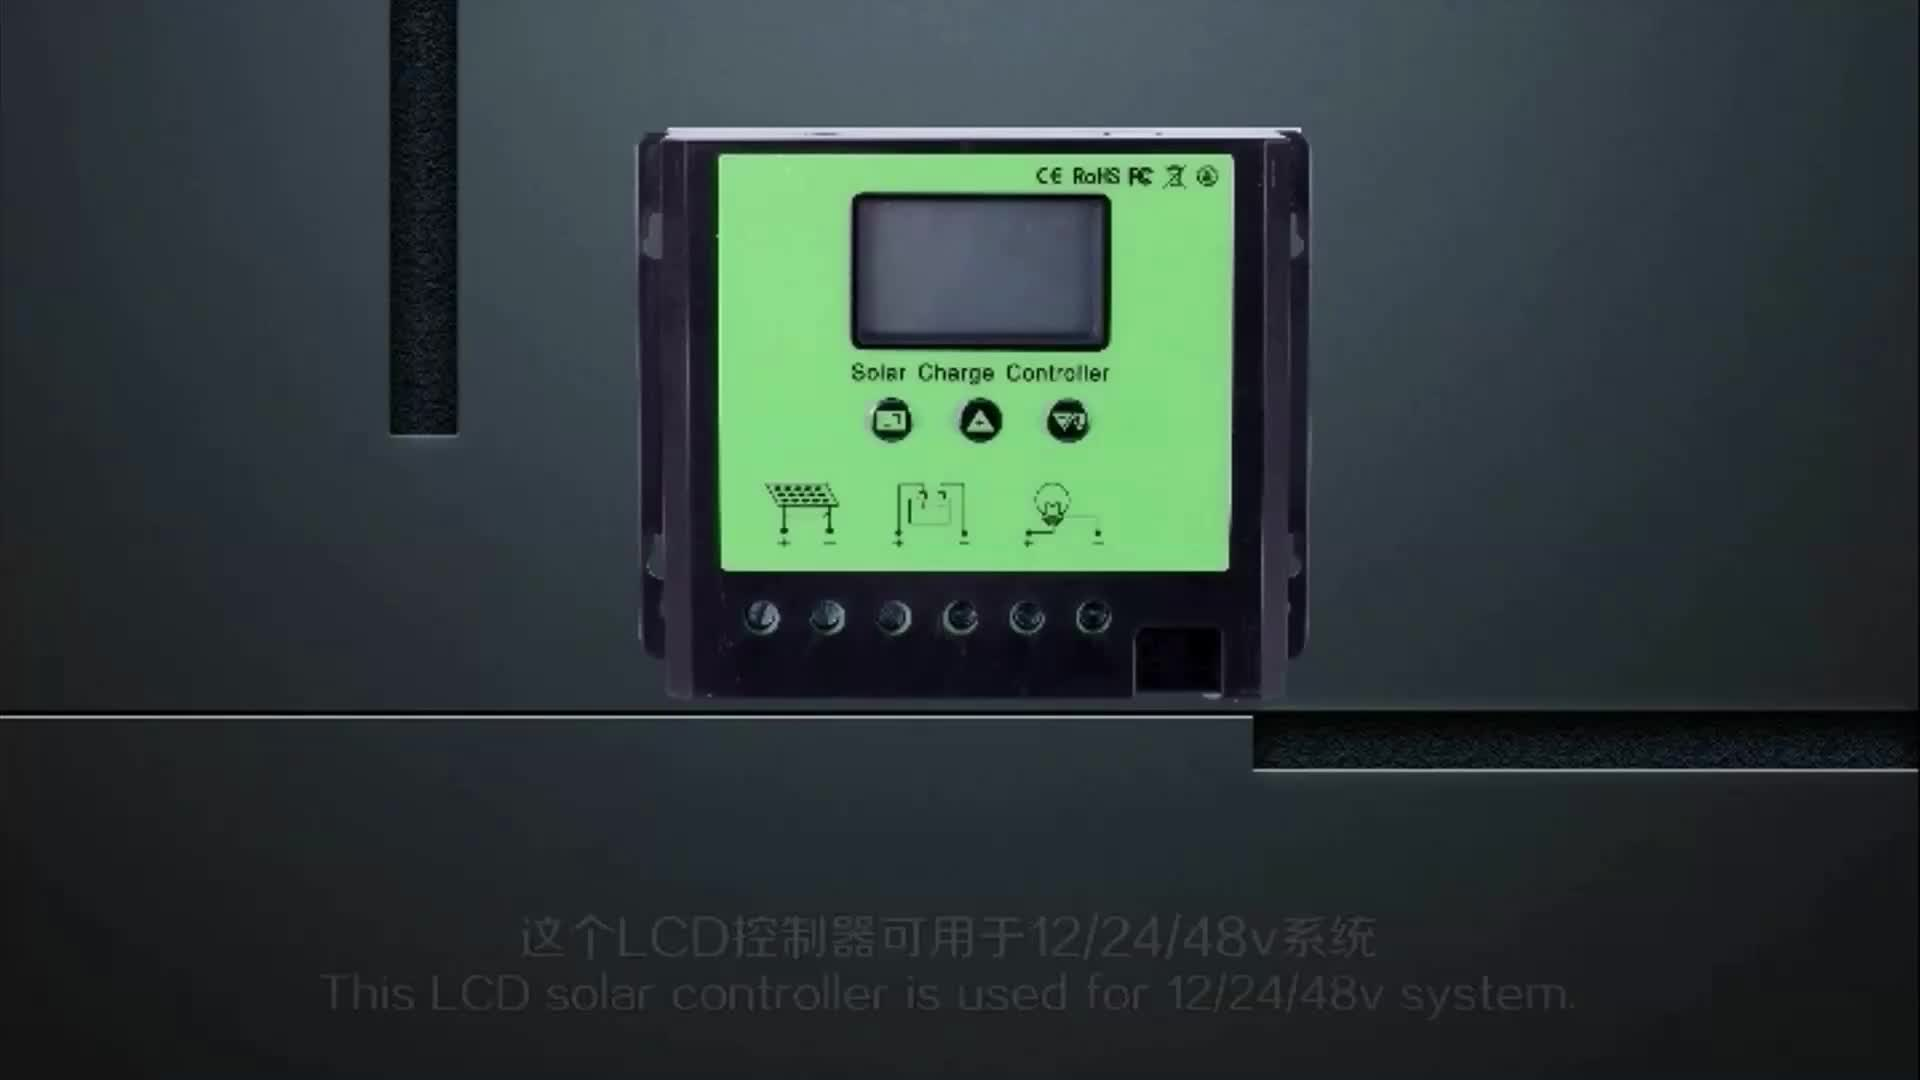 solar charge controller cy1210 manual